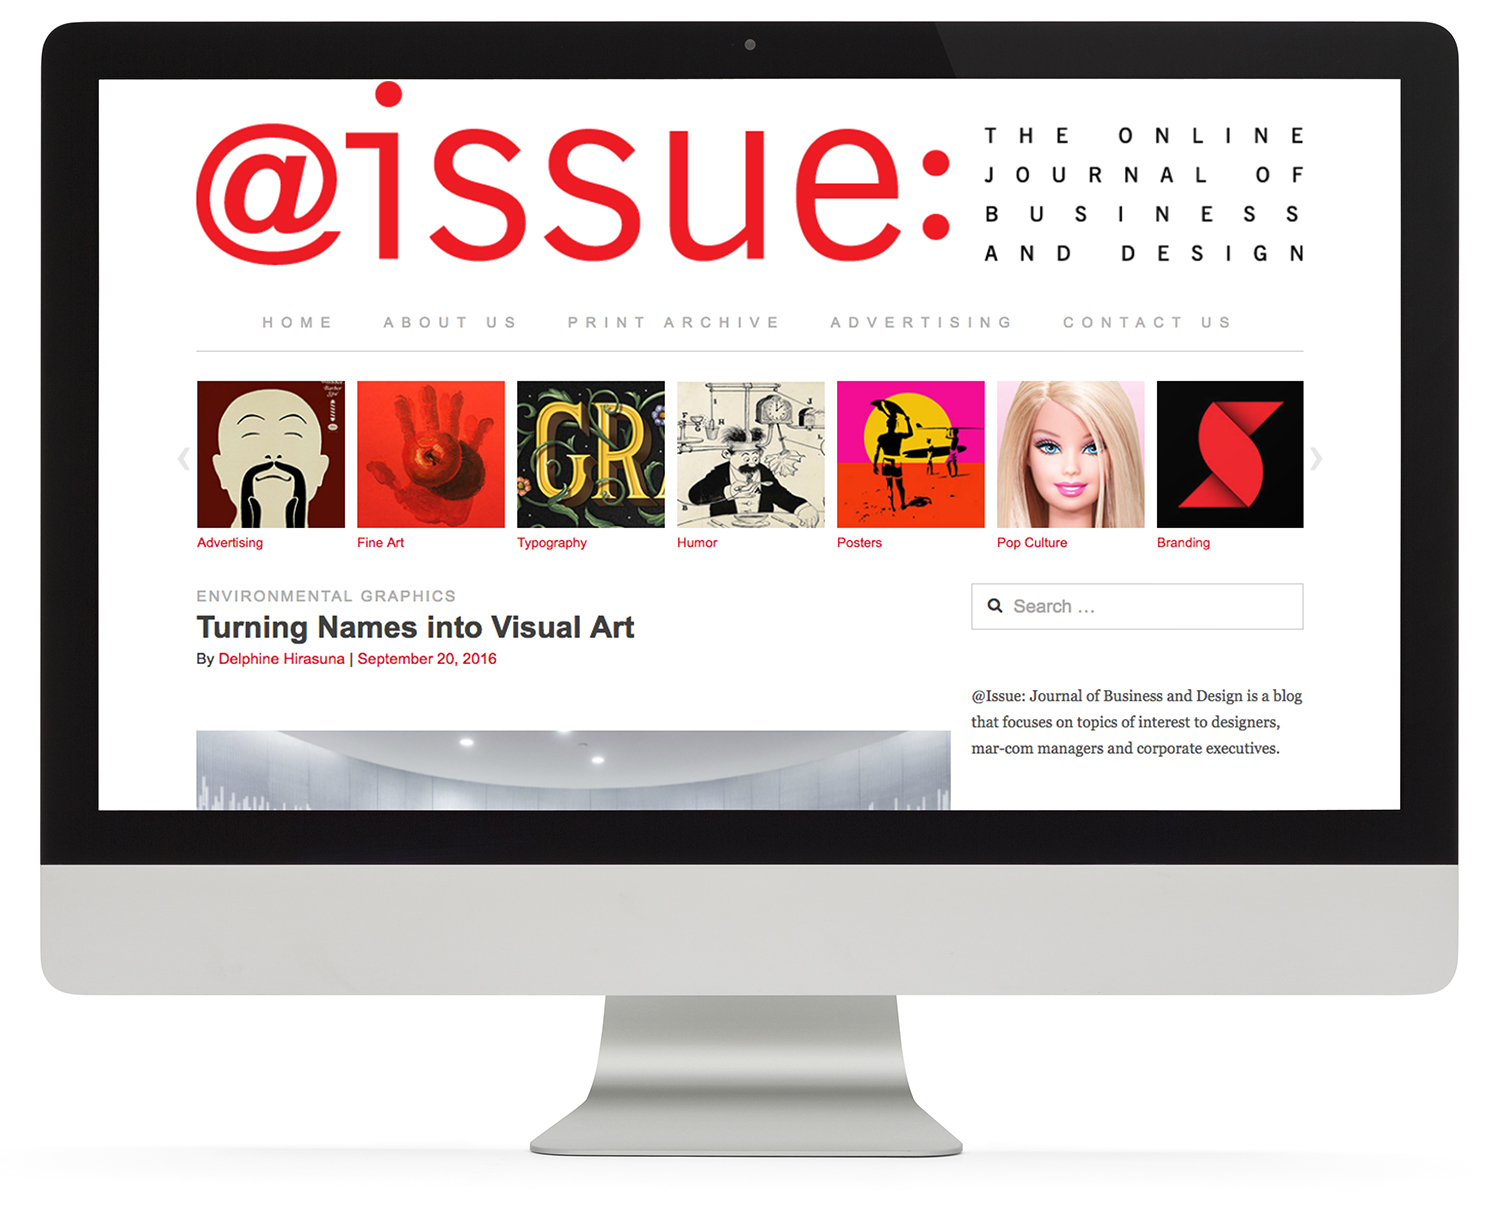 @issue website